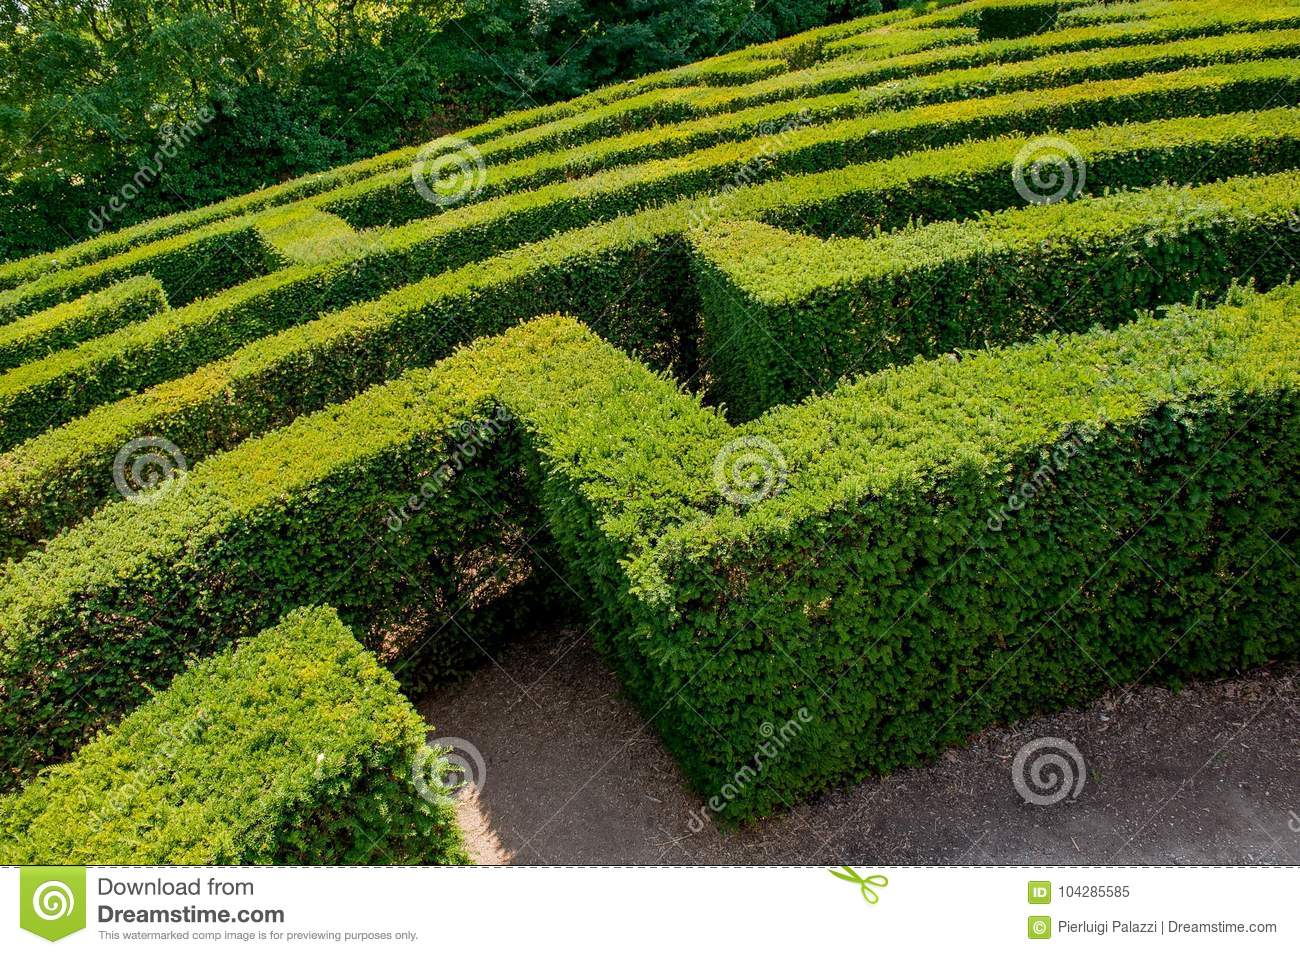 Labyrinth in